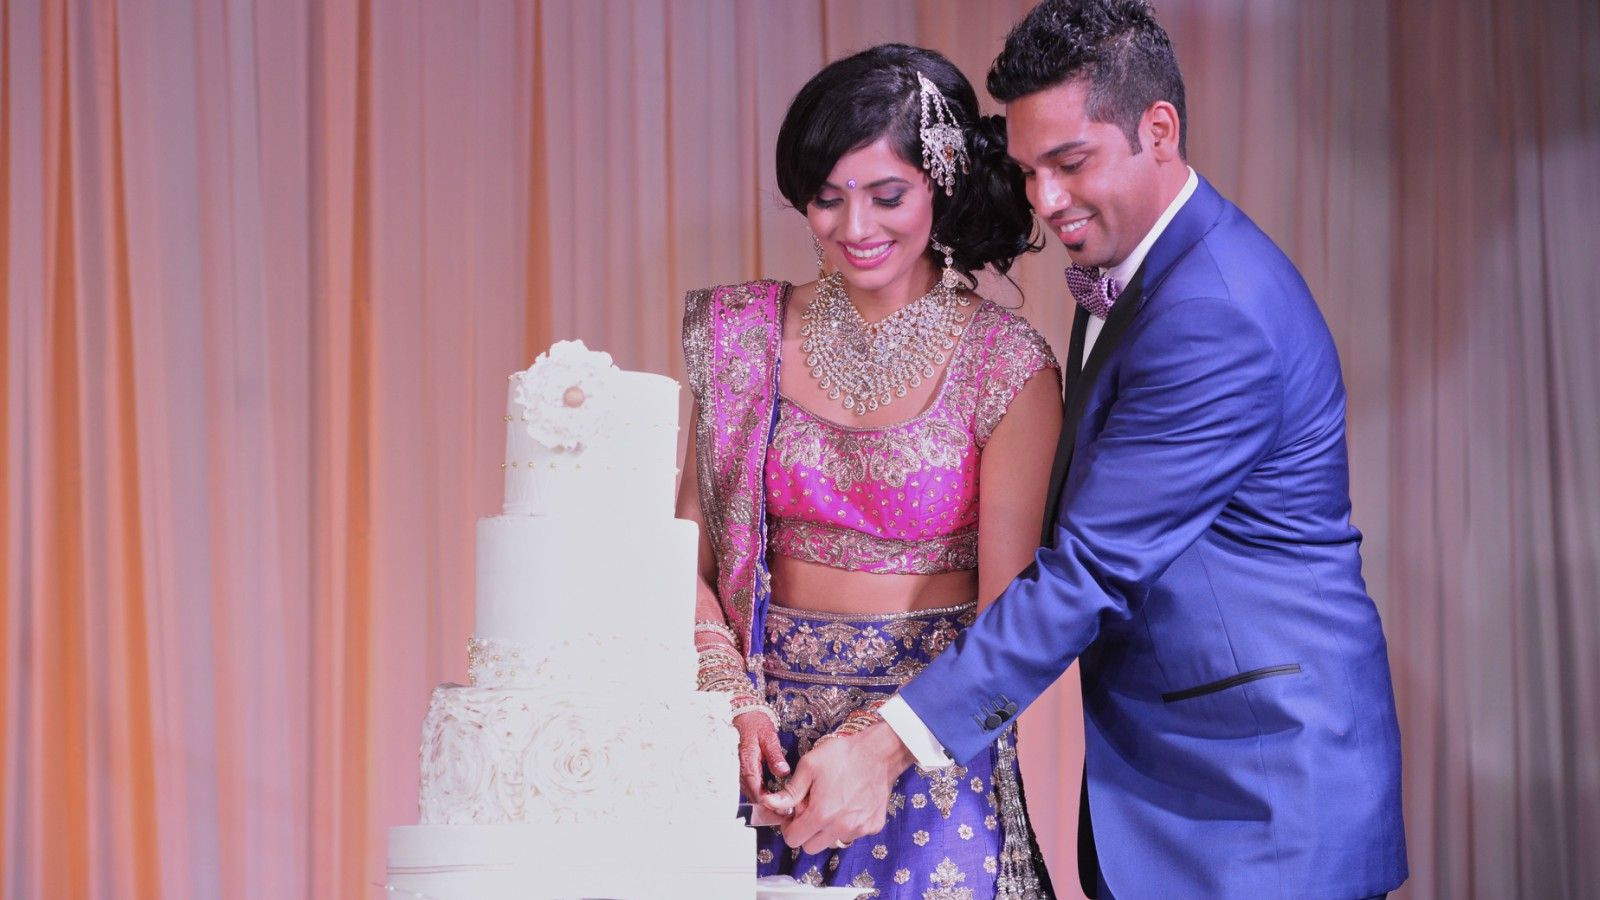 Downtown Calgary Wedding Venues - Indian Wedding Bride and Groom